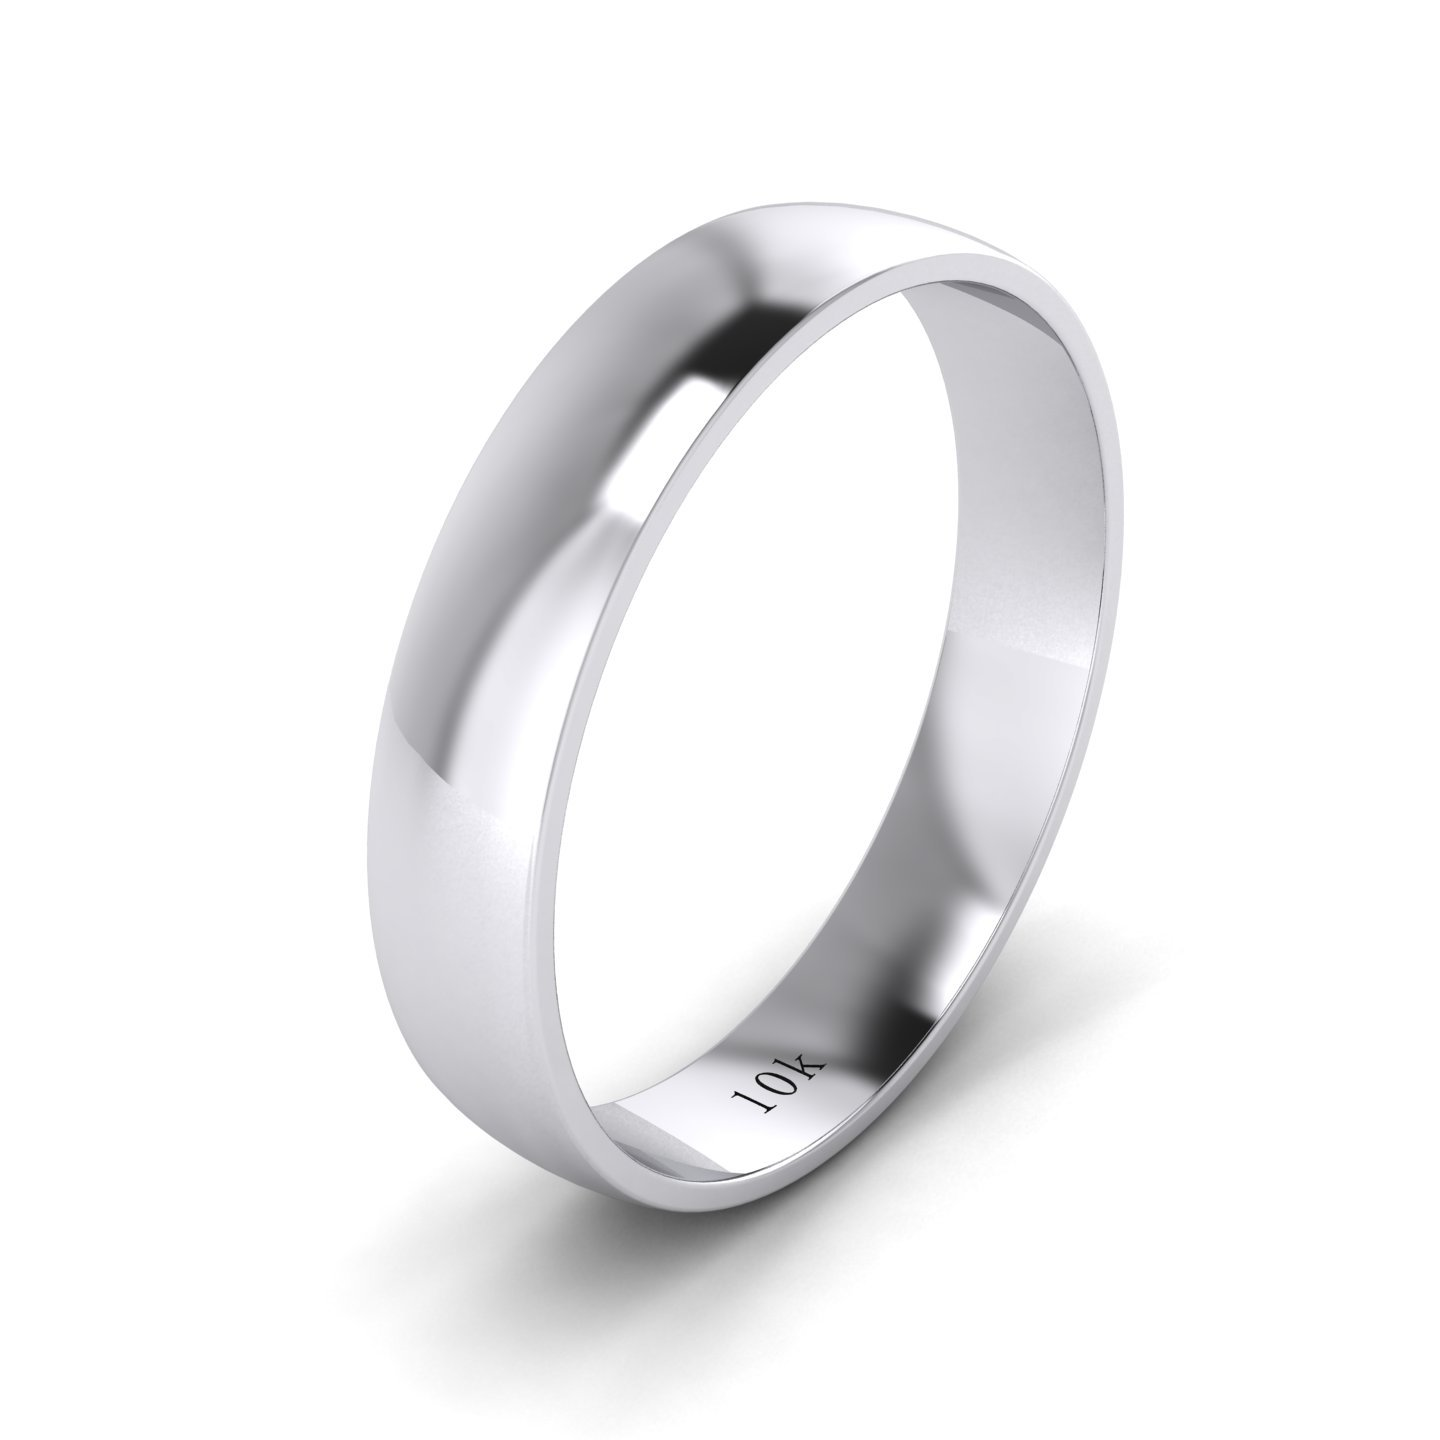 Unisex 10k White Gold 4mm Light Court Shape Comfort Fit Polished Wedding Ring Plain Band (7.5)